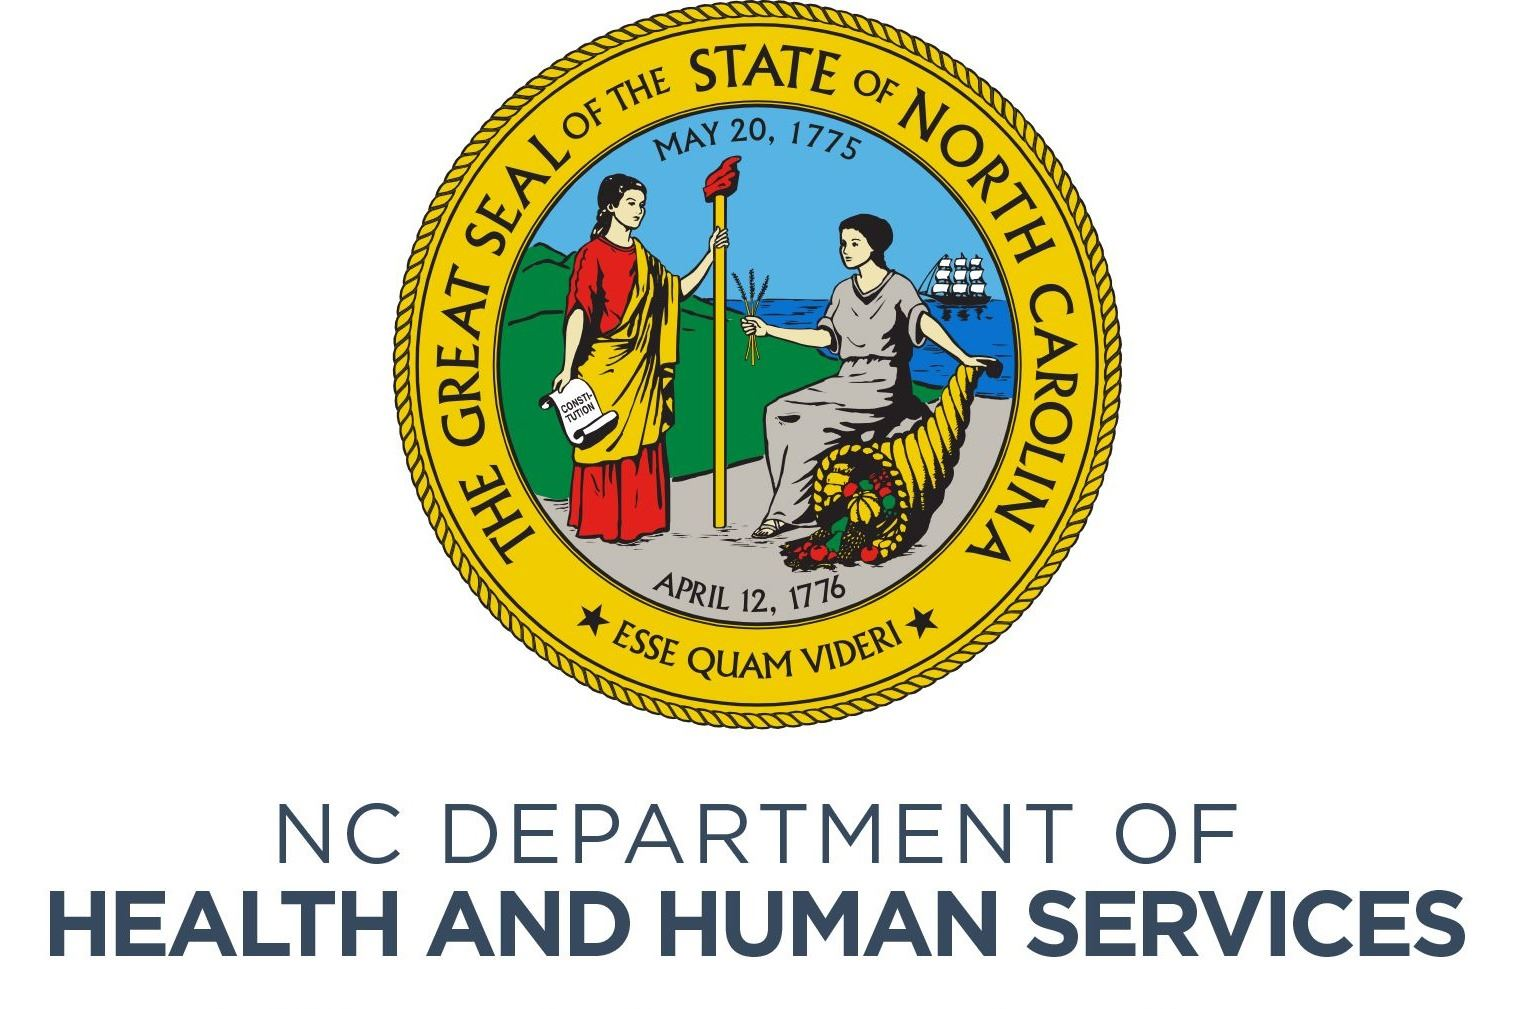 North Carolina Department of Health and Human Services Information regarding COVID-19